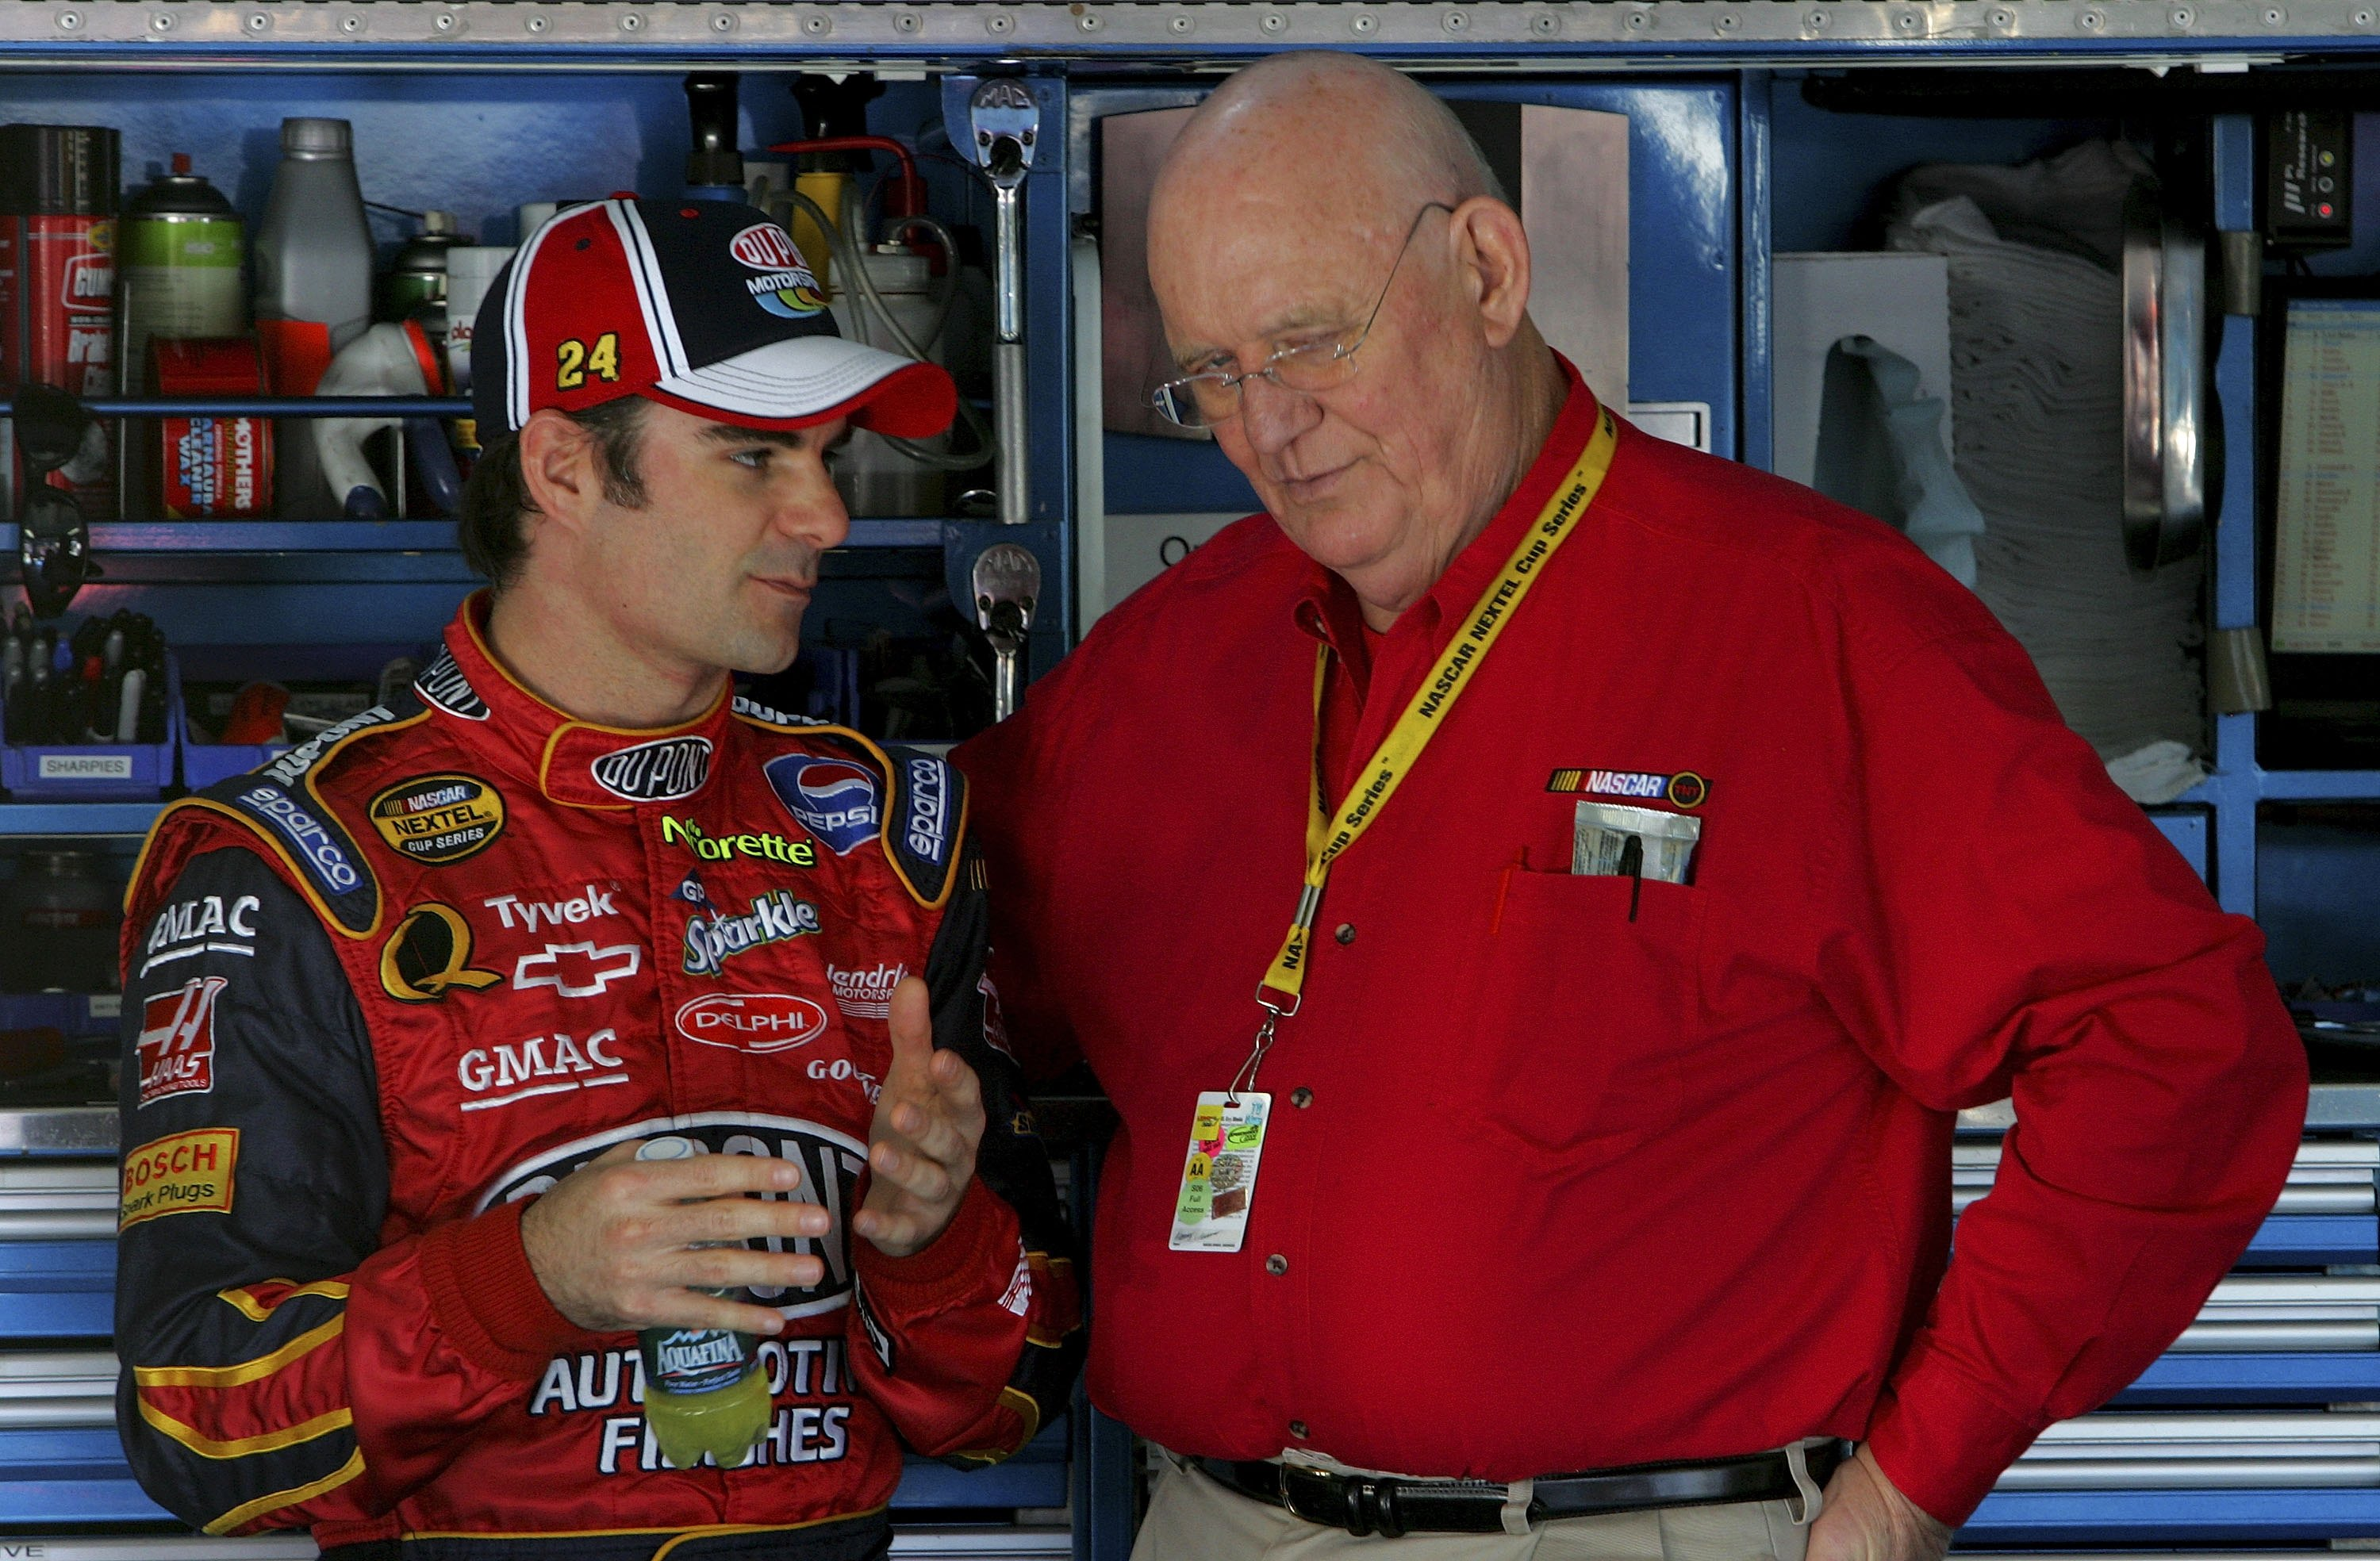 Parsons chats with Jeff Gordon